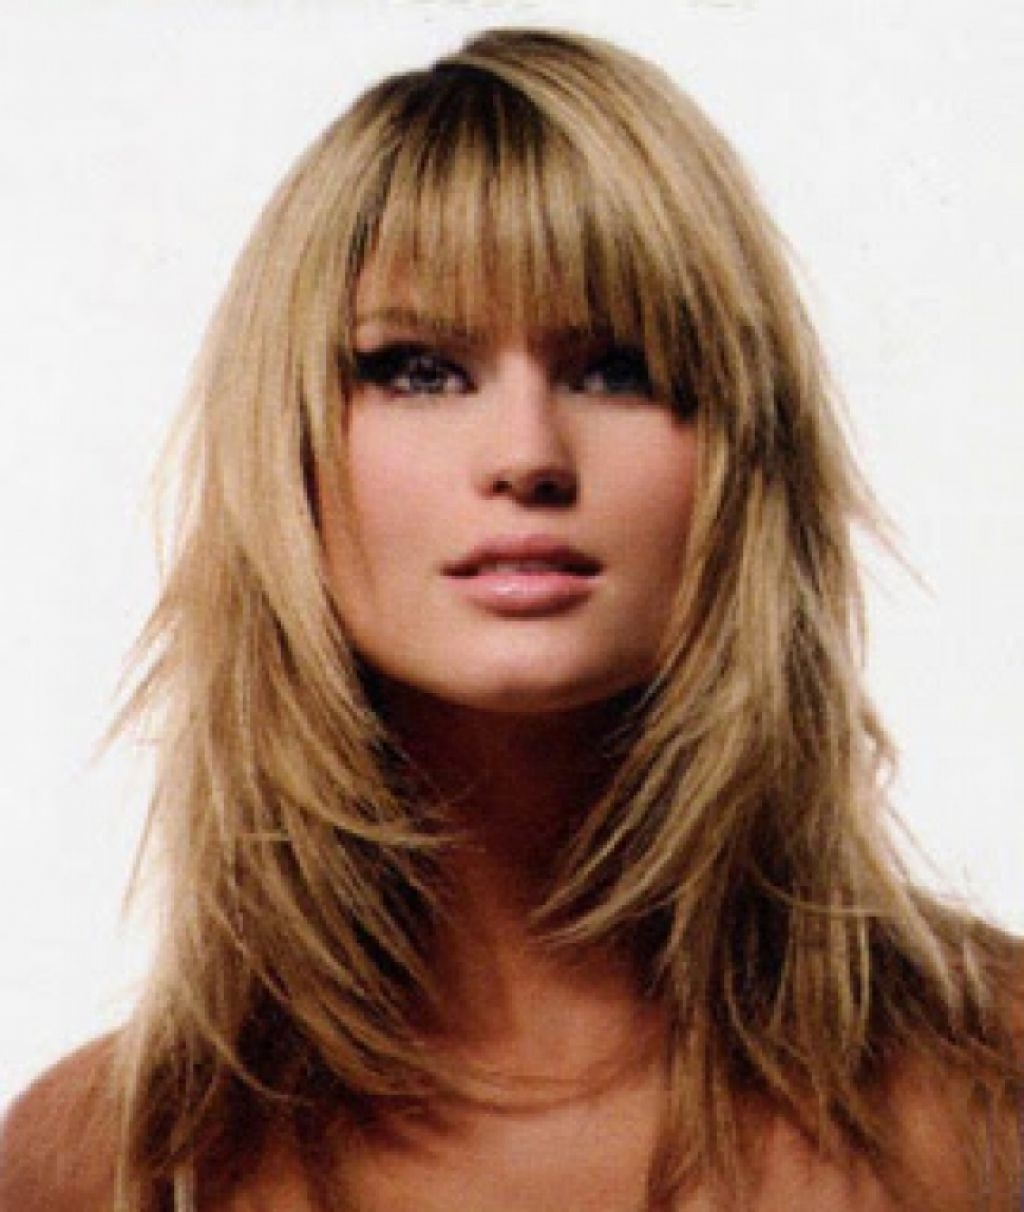 Most Current Long Shag Hairstyles Throughout Best Medium Shaggy Haircuts Ideas With Bangs And Layers Side View (View 7 of 15)